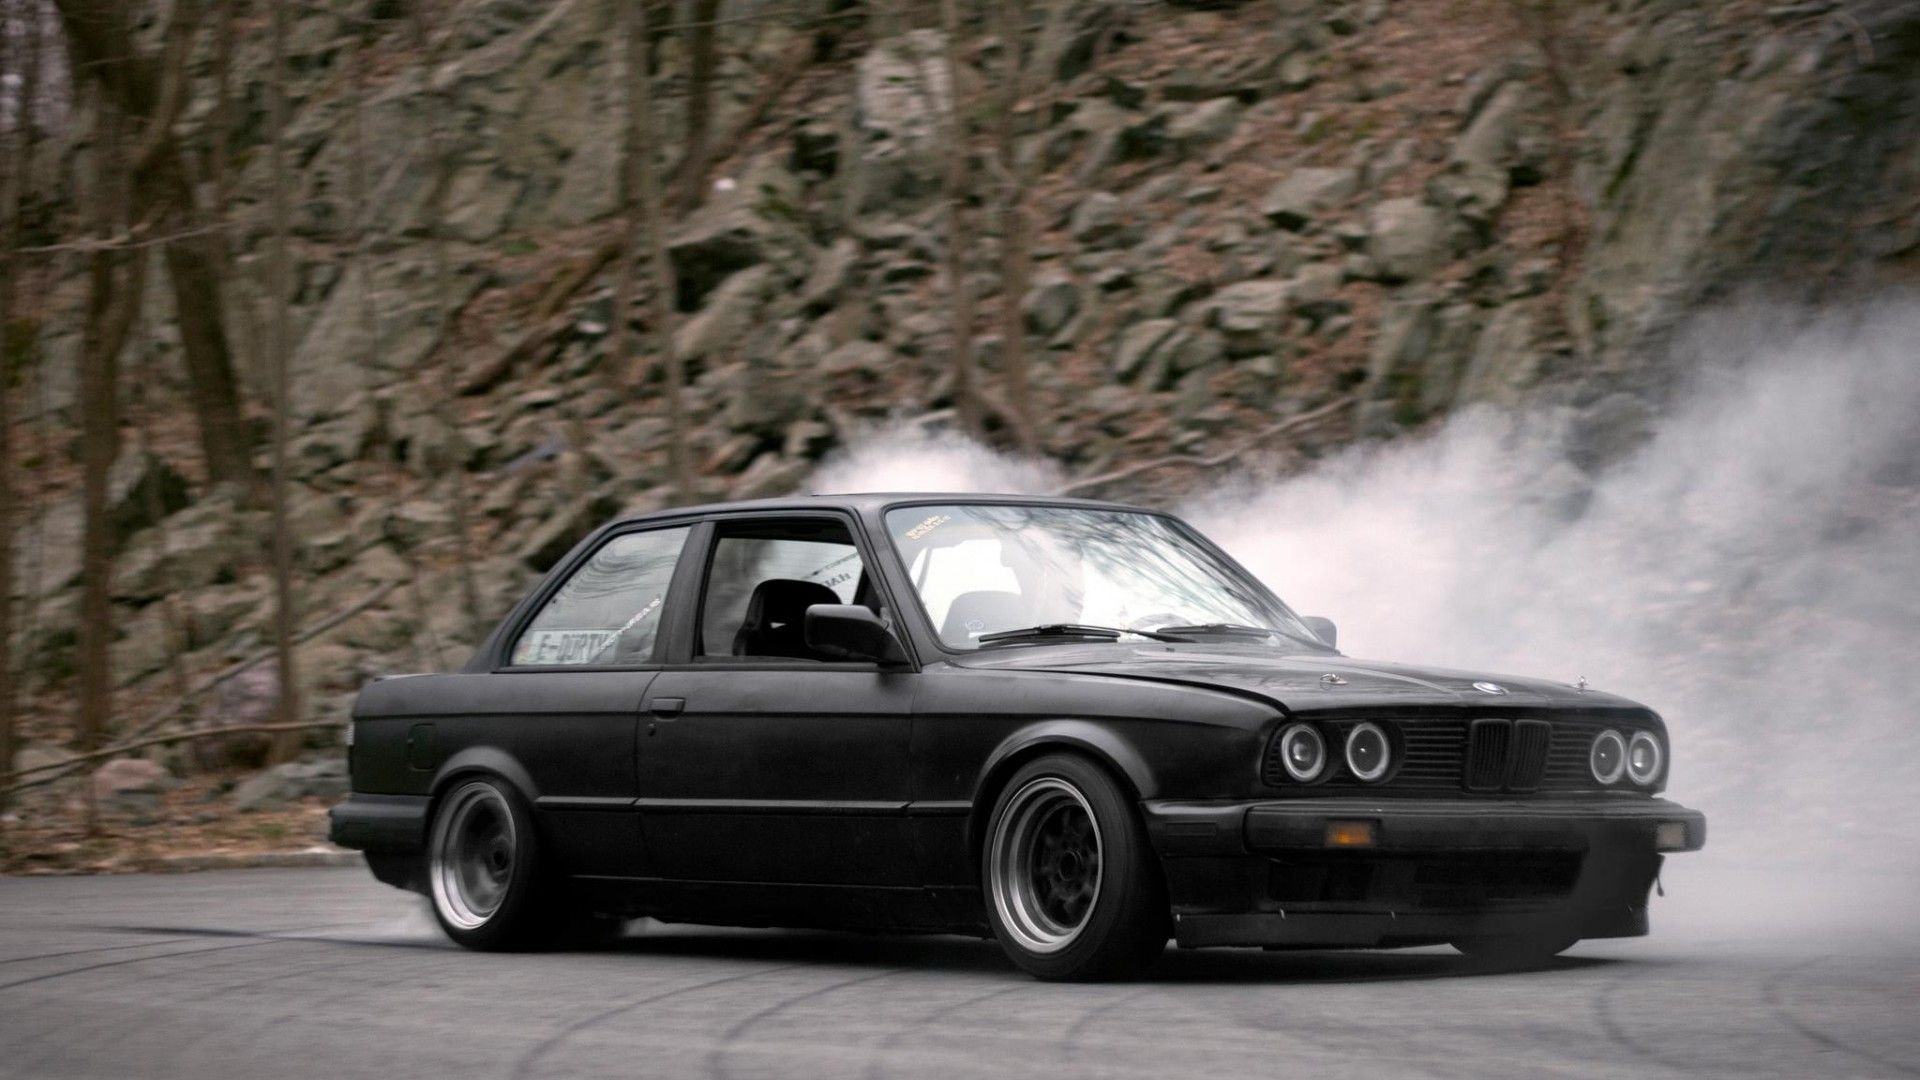 Bmw E30 Wallpaper 12 1920x1080